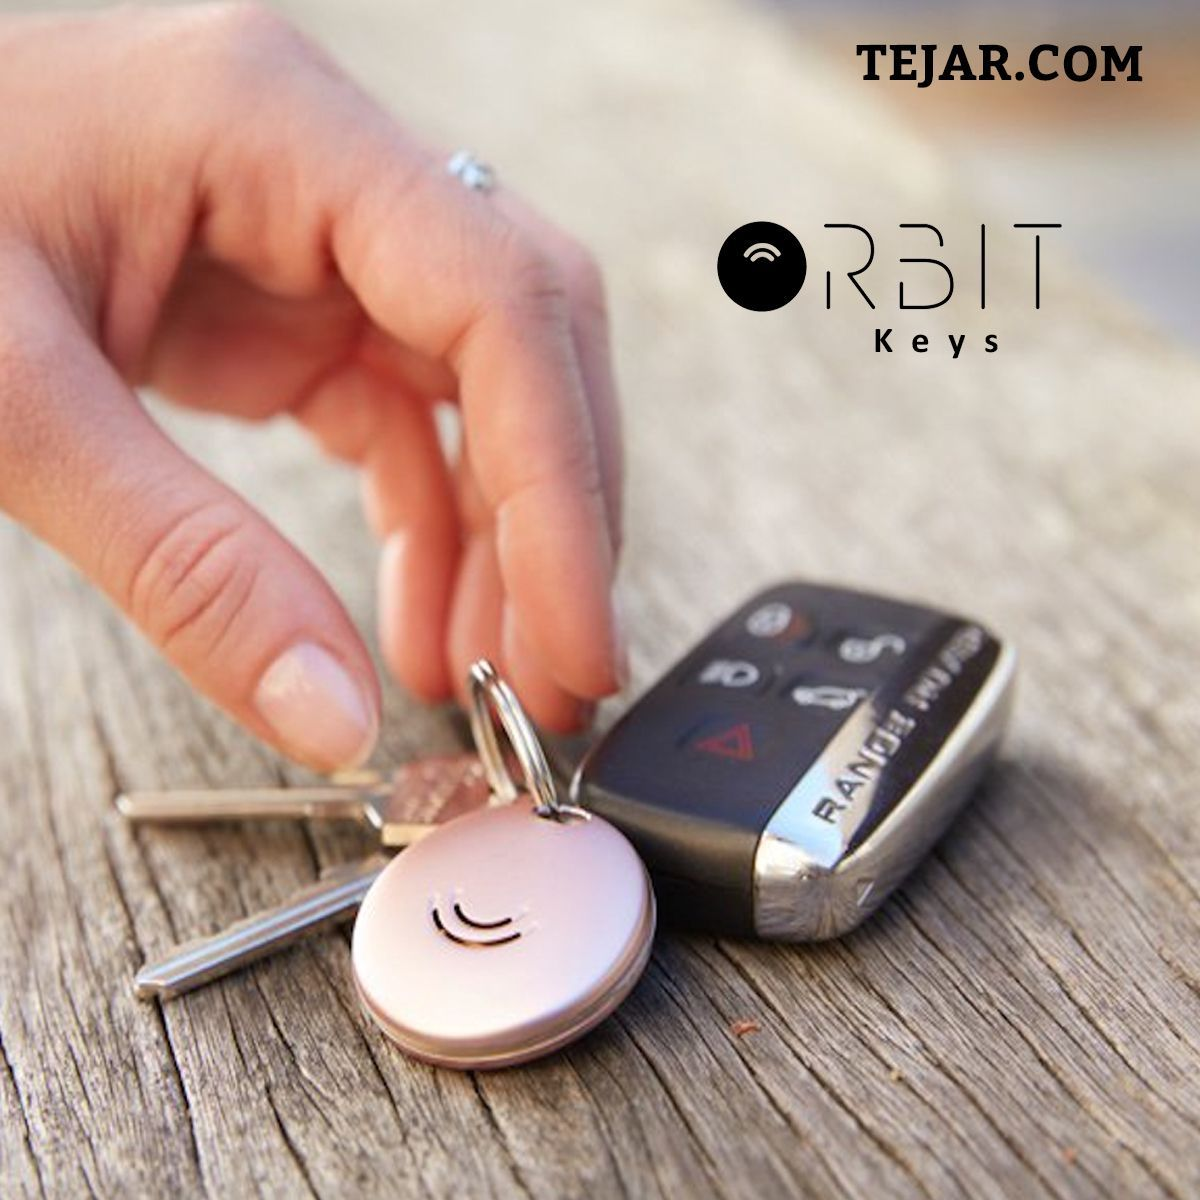 Orbit Keys #bluetoothtechnology With it's premium aluminium waterproof casing and replaceable battery; Orbit uses Bluetooth technology along with a free app to locate your keys.   #Tejar #UAE #bluetoothtechnology